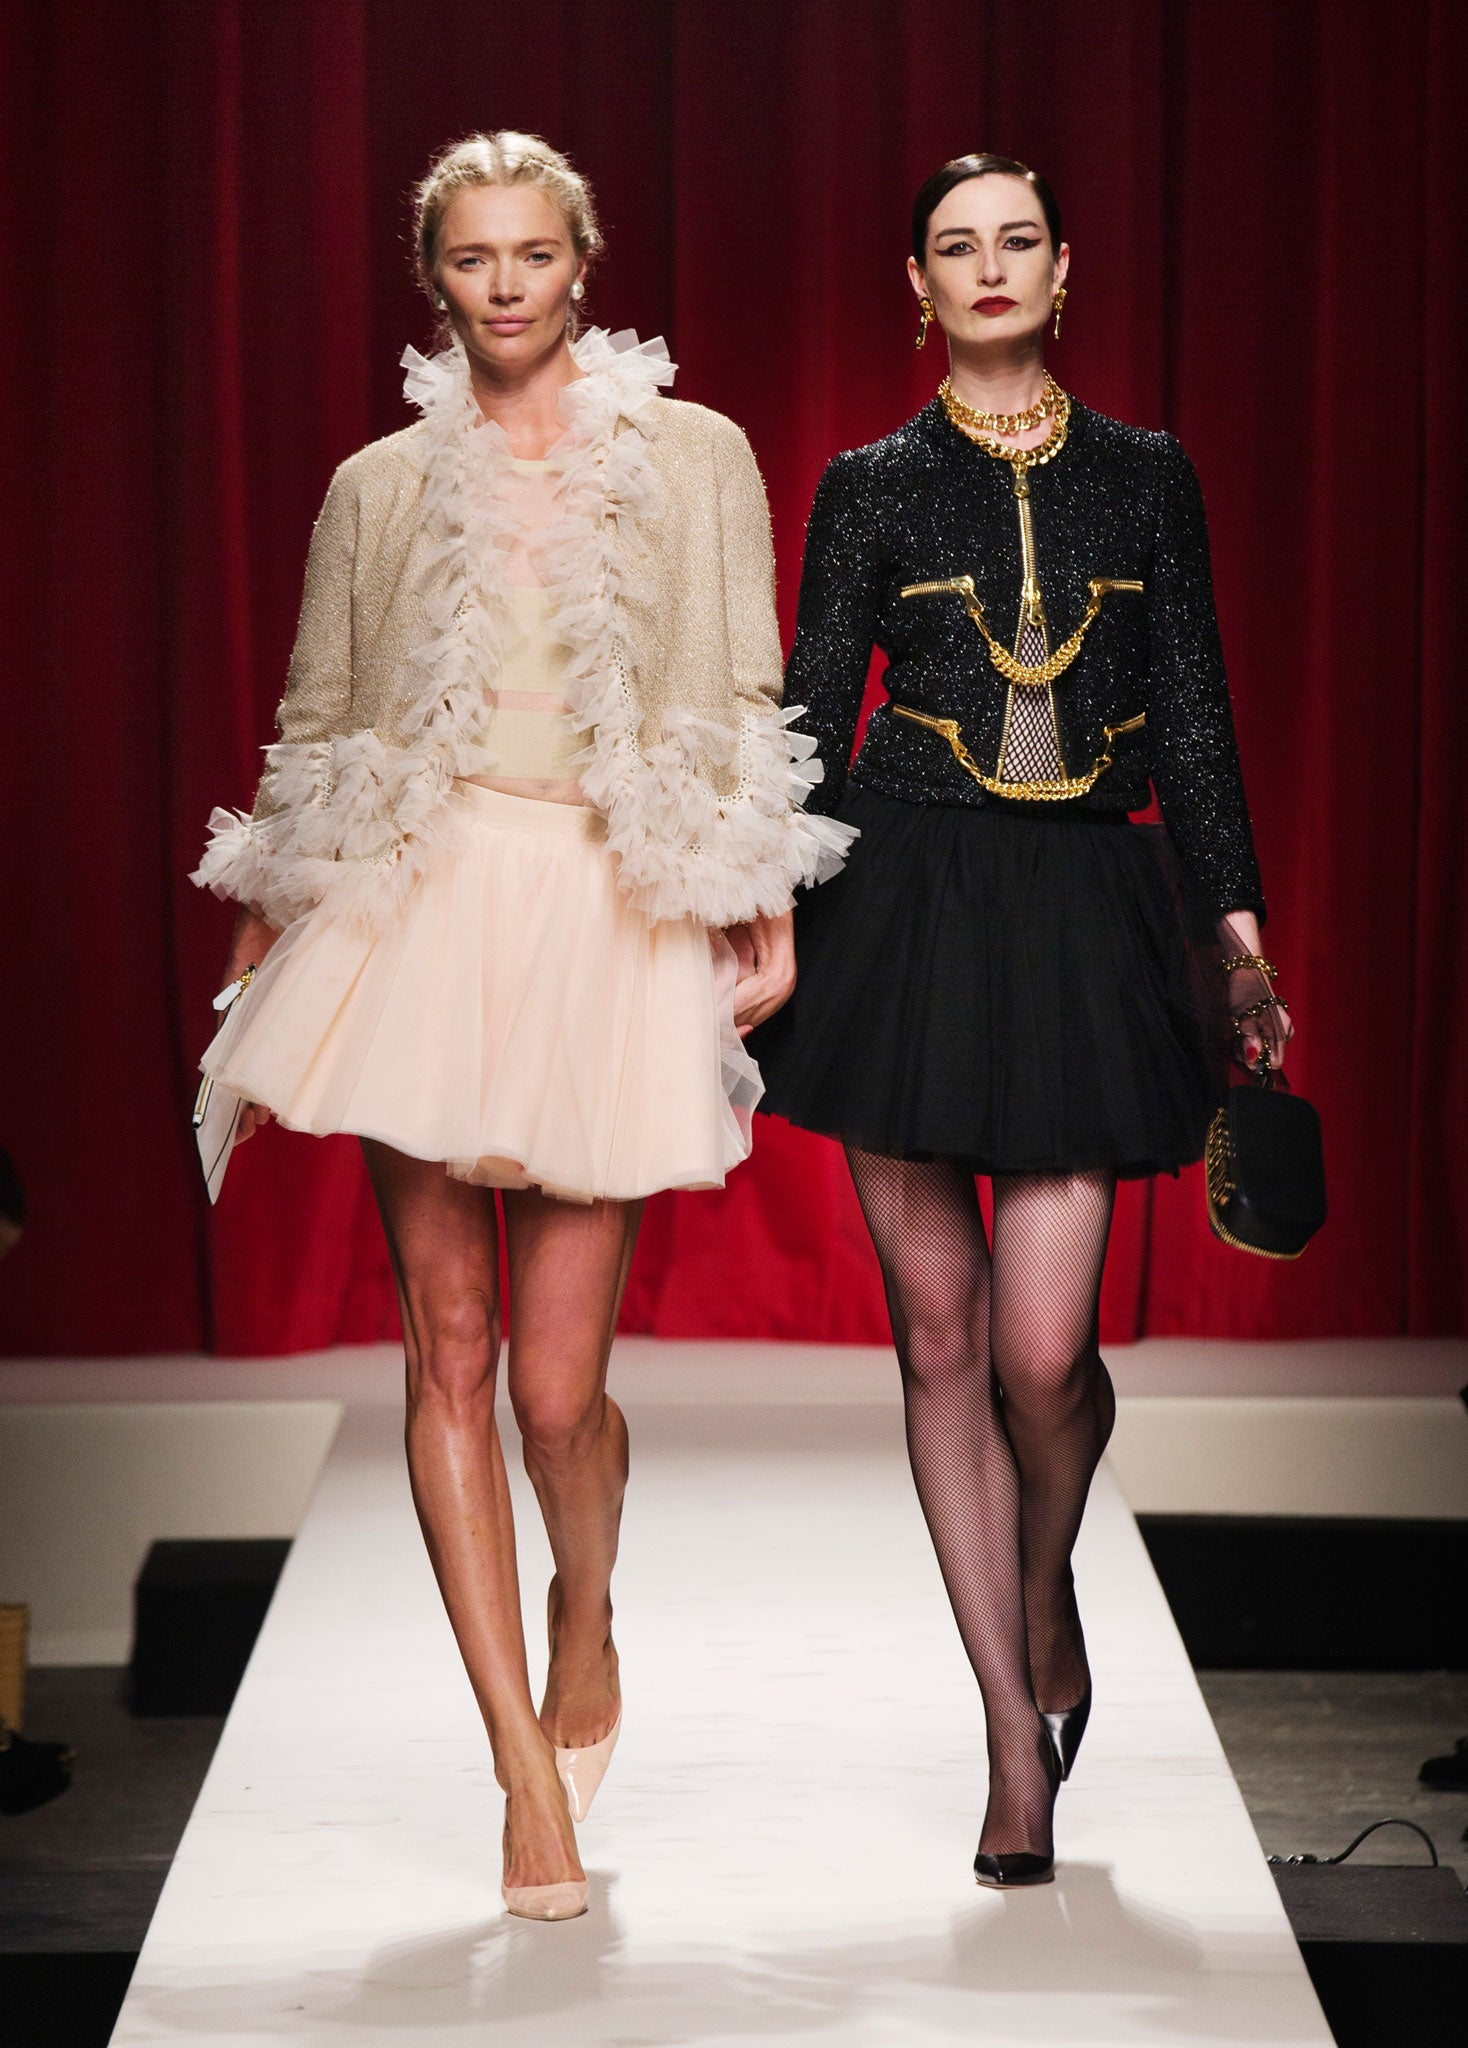 548137557200d Moschino 30 years on: Italy's most light-hearted label enters a new era